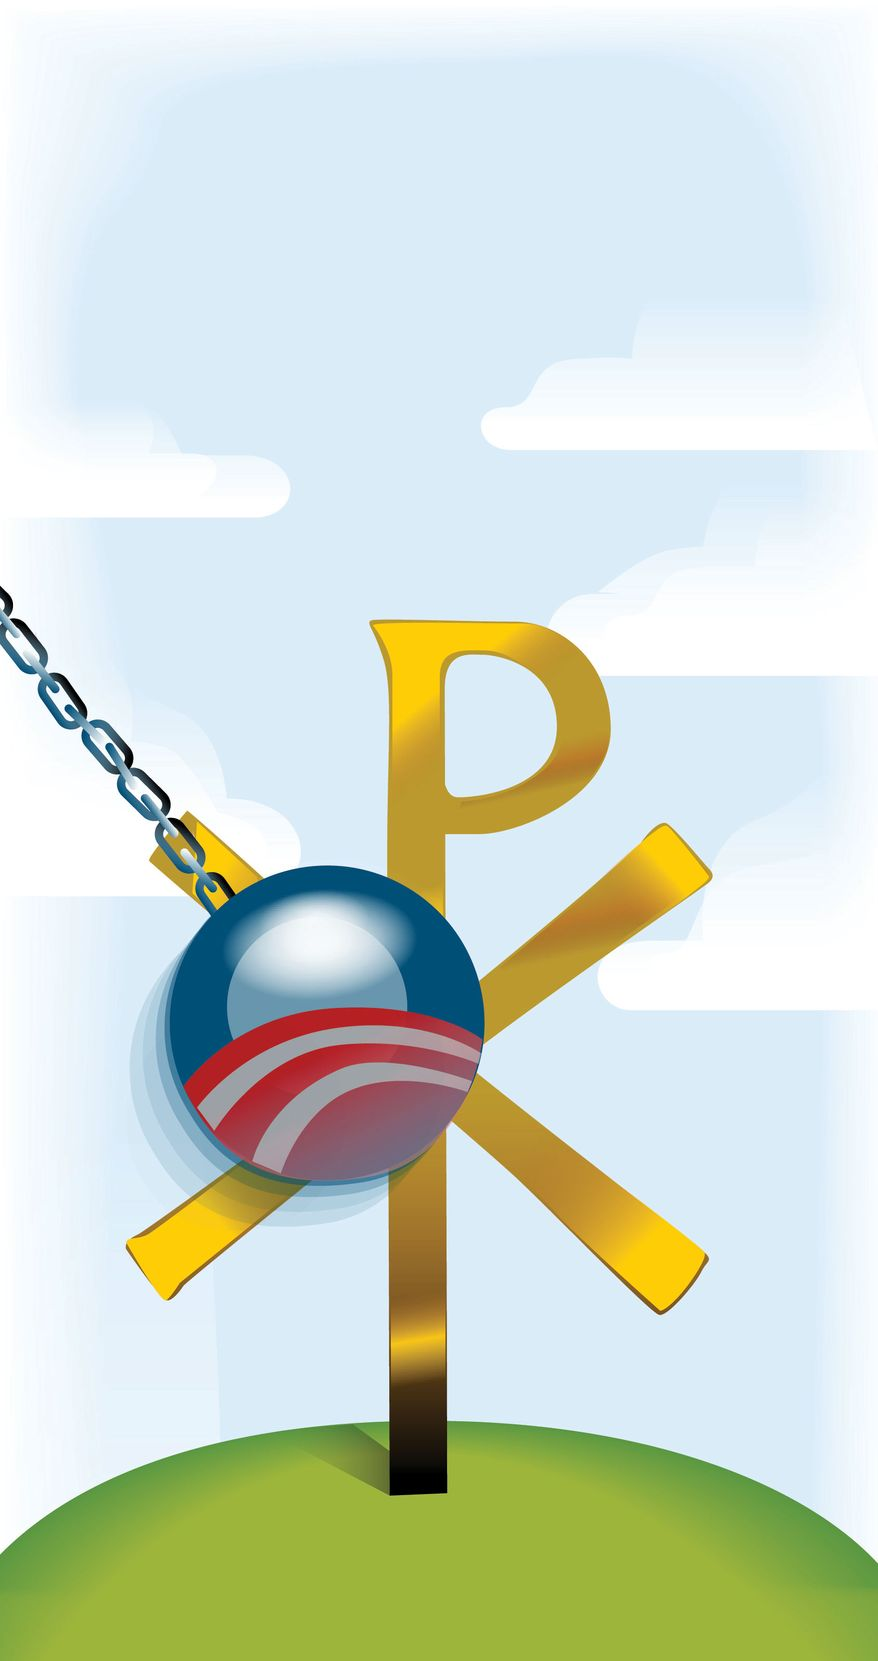 Illustration by Linas Garsys for The Washington Times